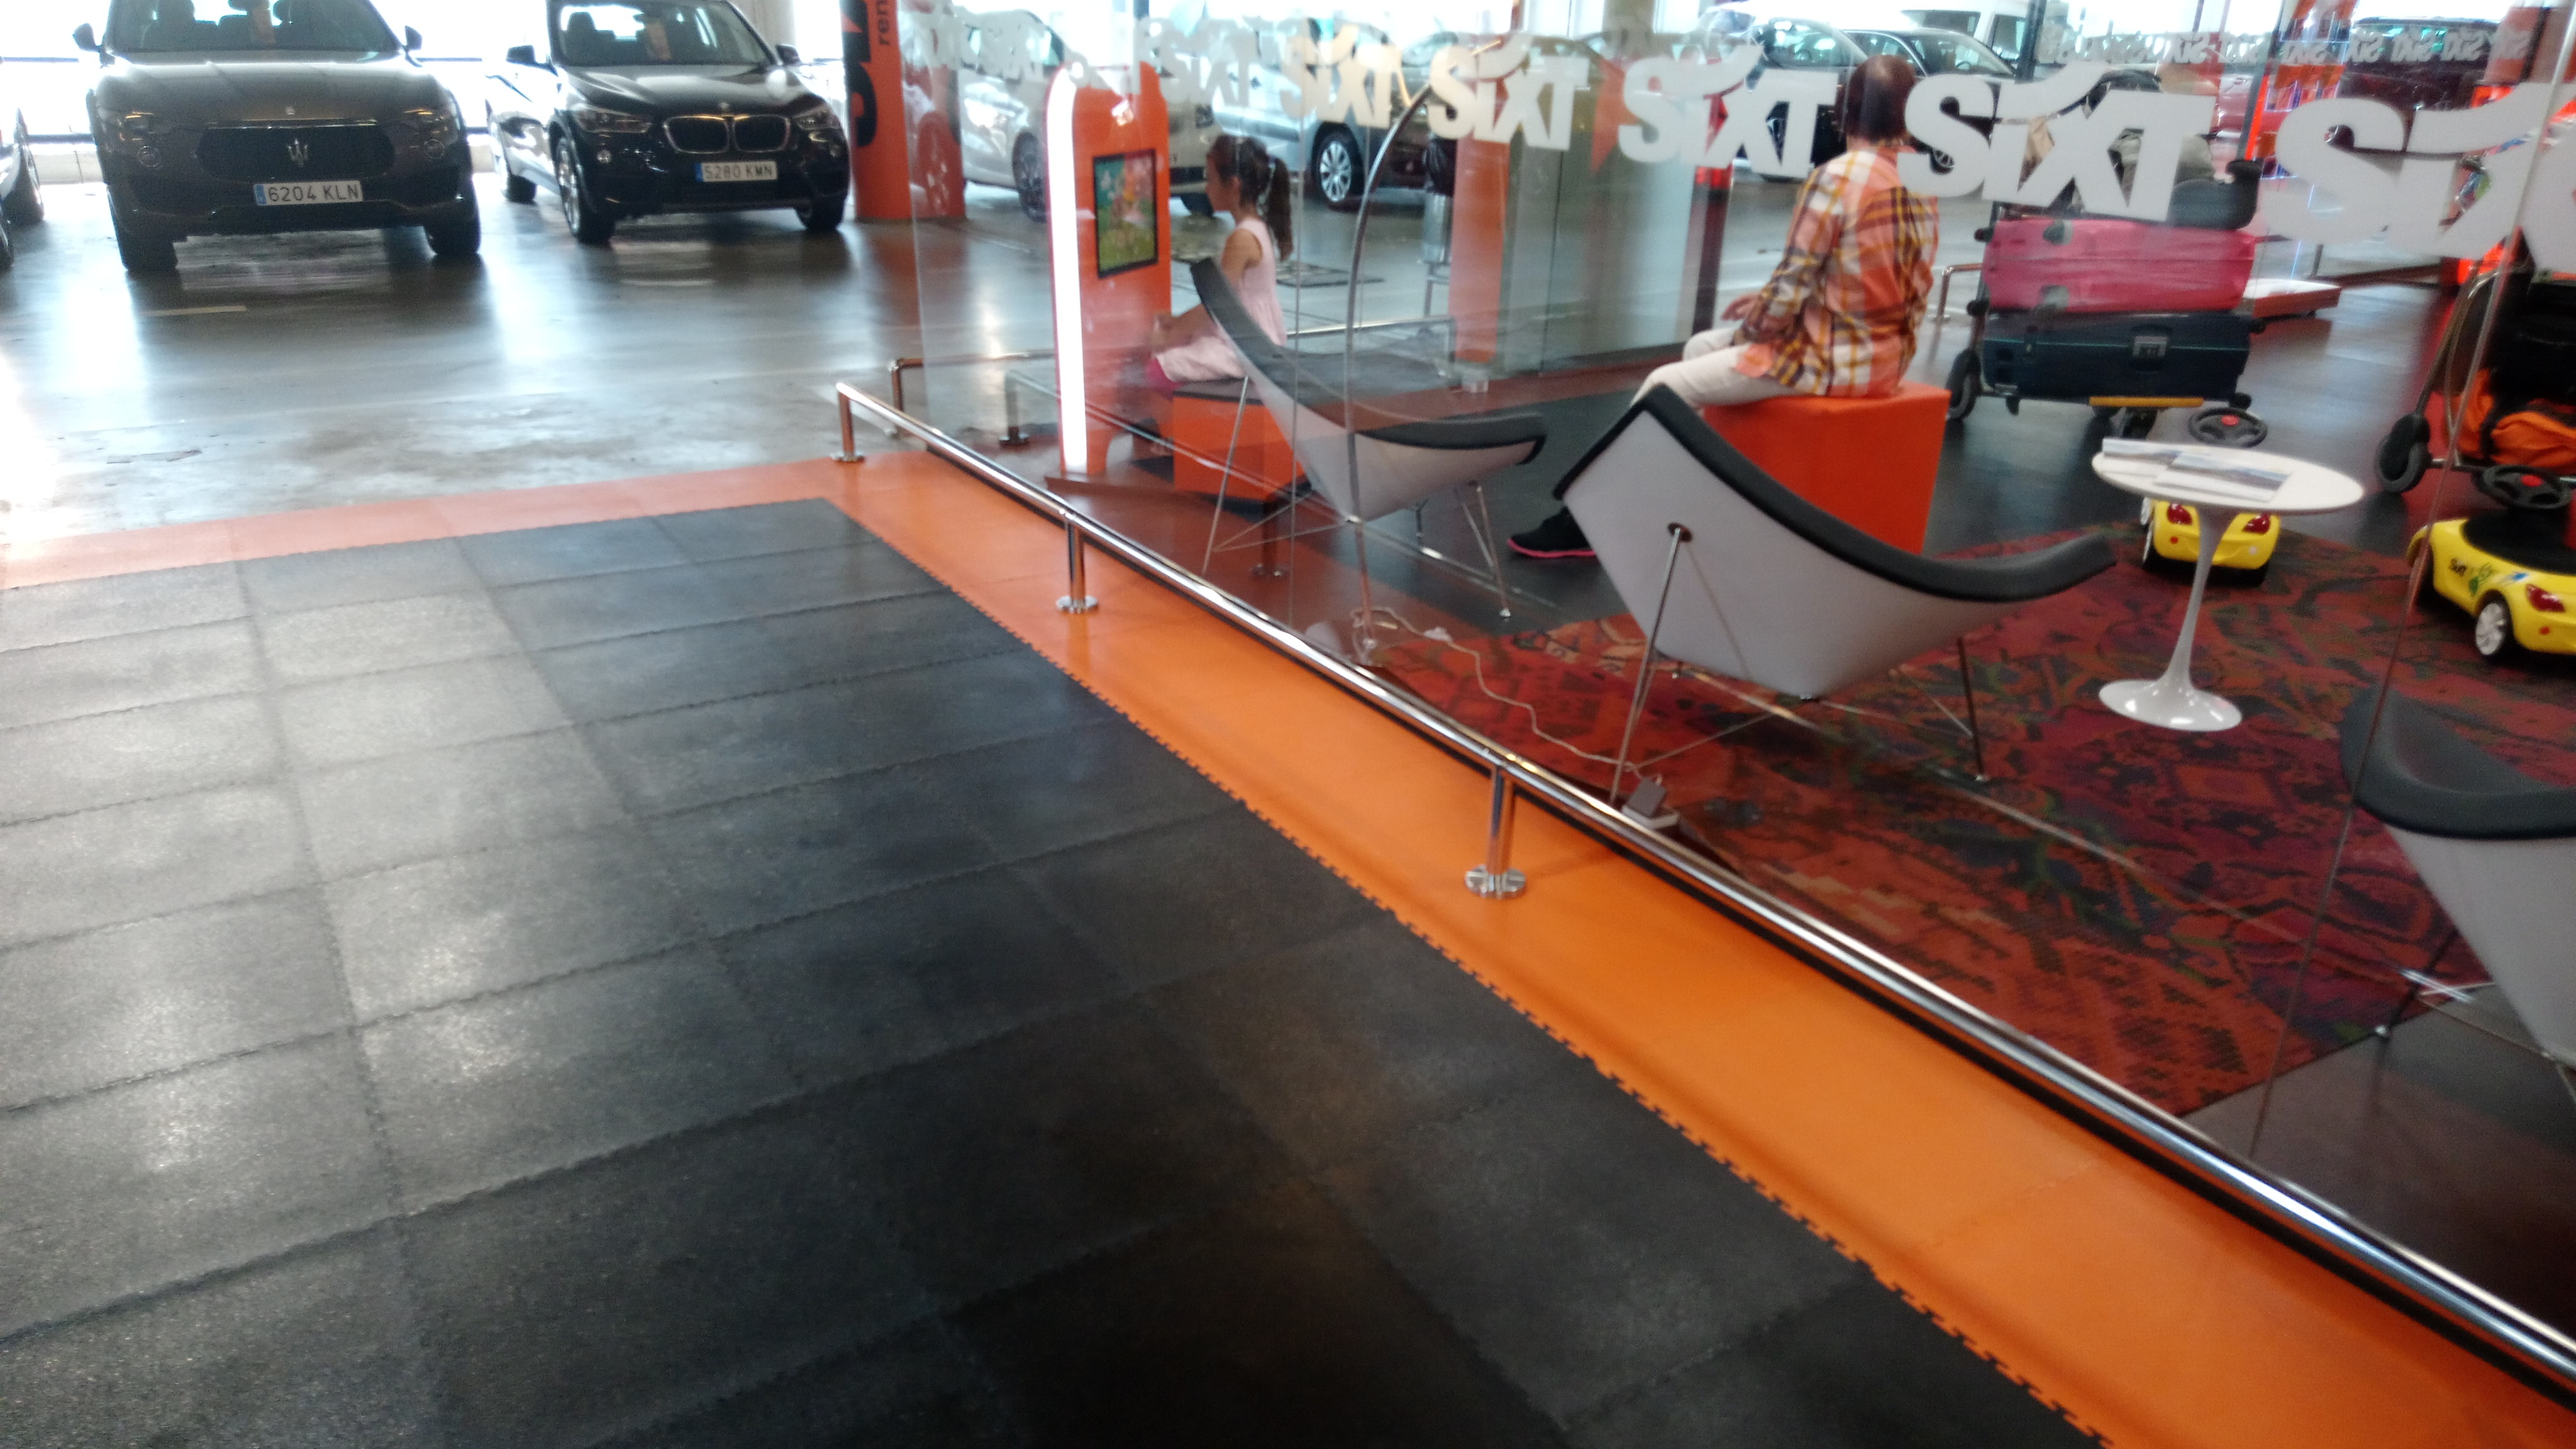 sixt t1 parking reforma 4